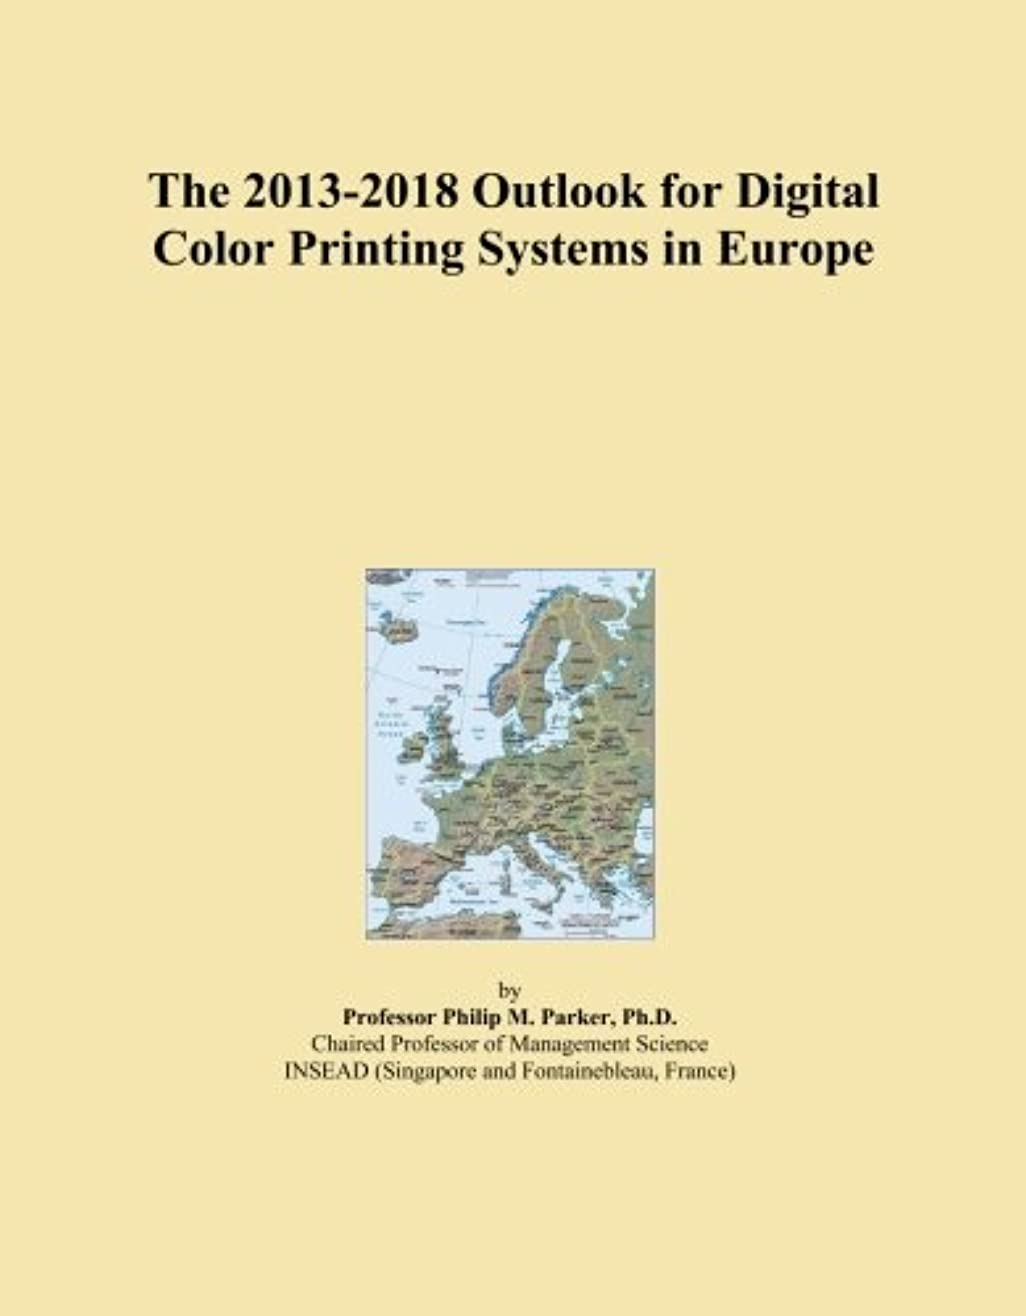 オンス音声議論するThe 2013-2018 Outlook for Digital Color Printing Systems in Europe